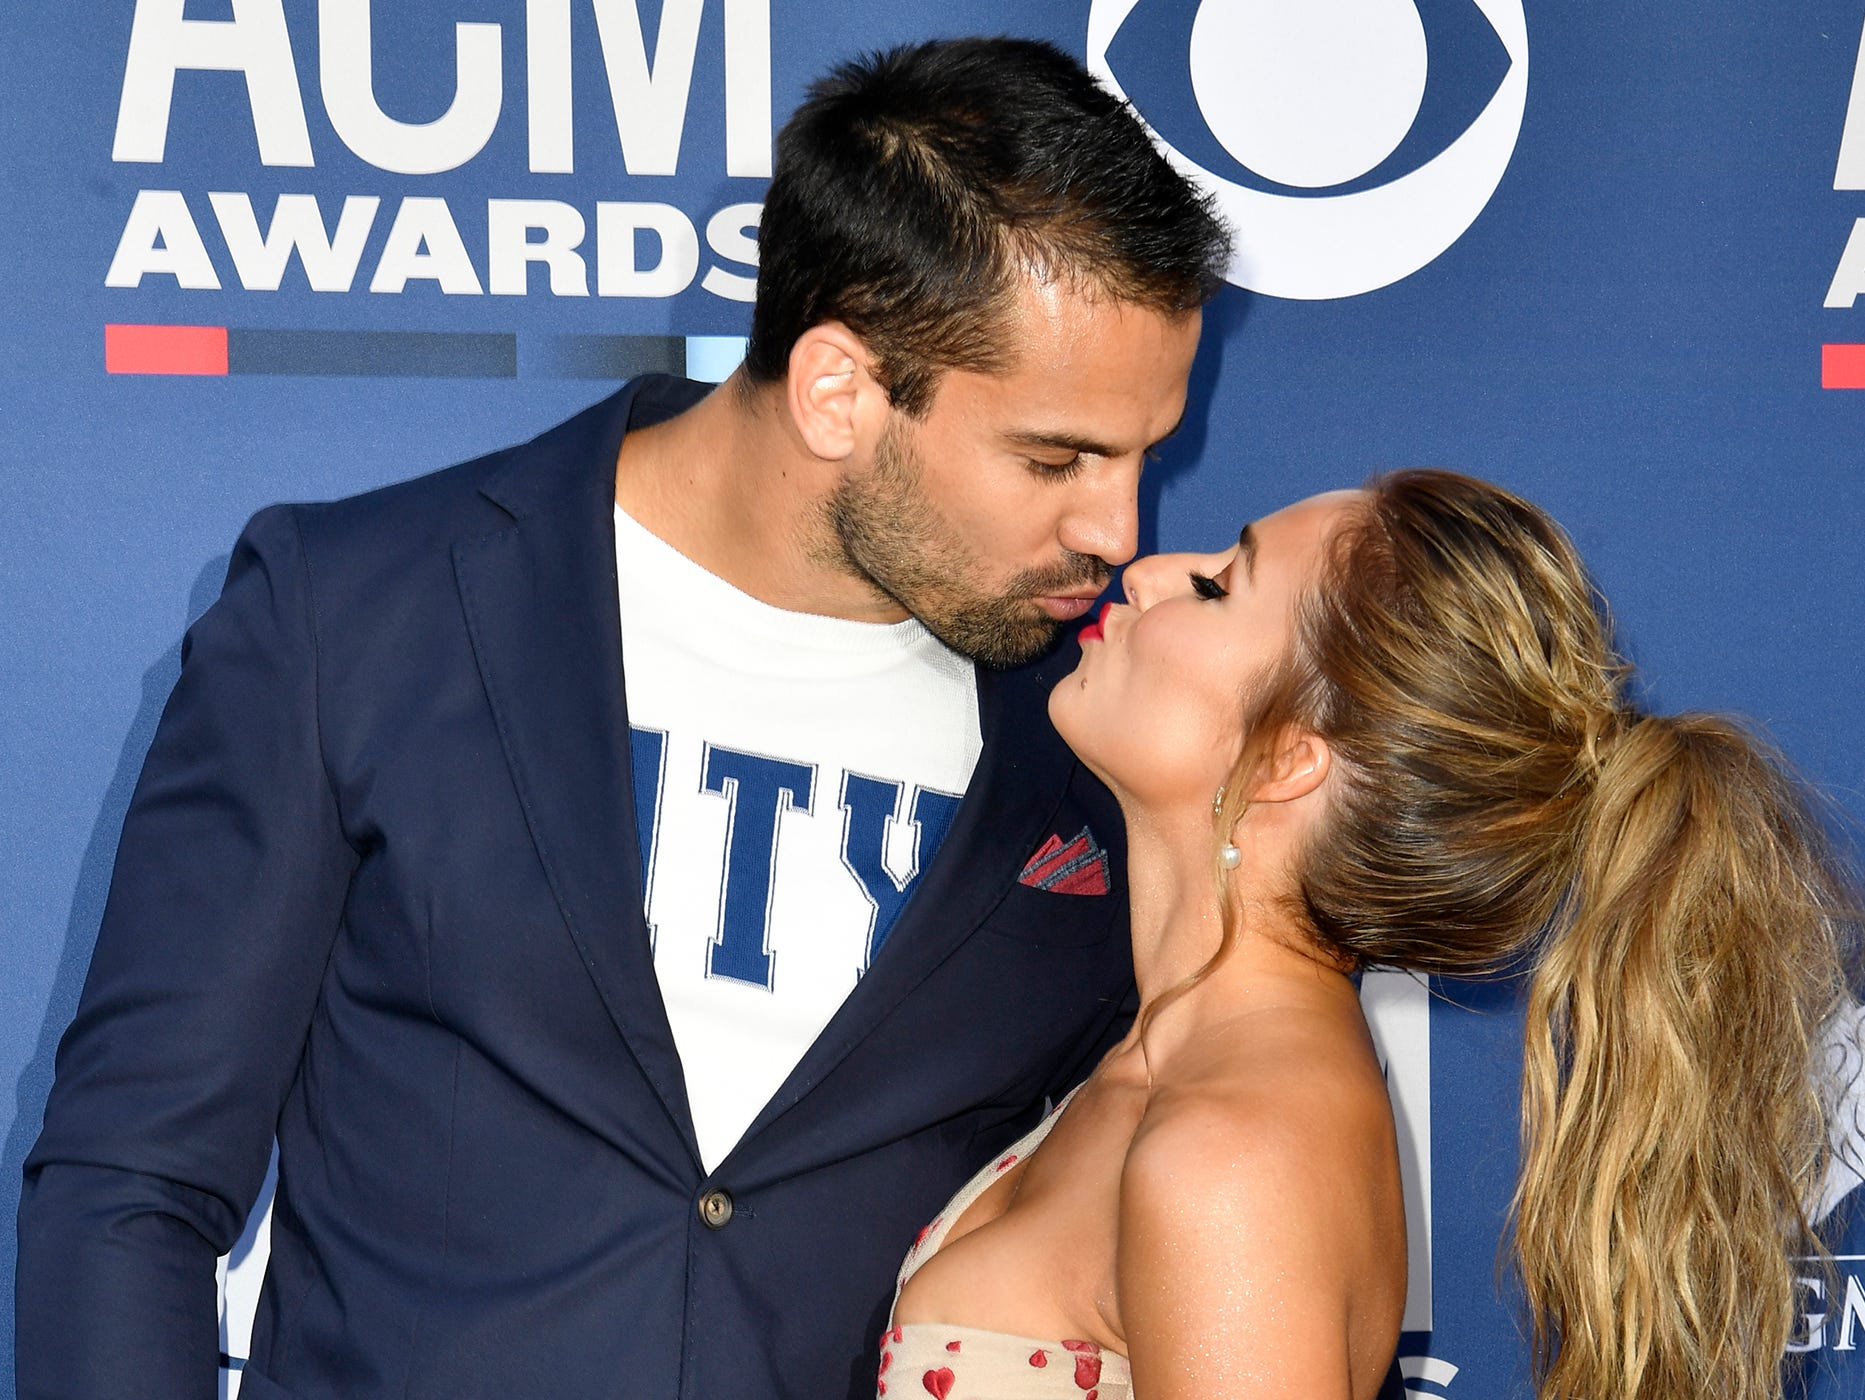 Jessie James Decker, right, with Eric Decker, walk the red carpet at the 54TH Academy of Country Music Awards Sunday, April 7, 2019, in Las Vegas, Nev.